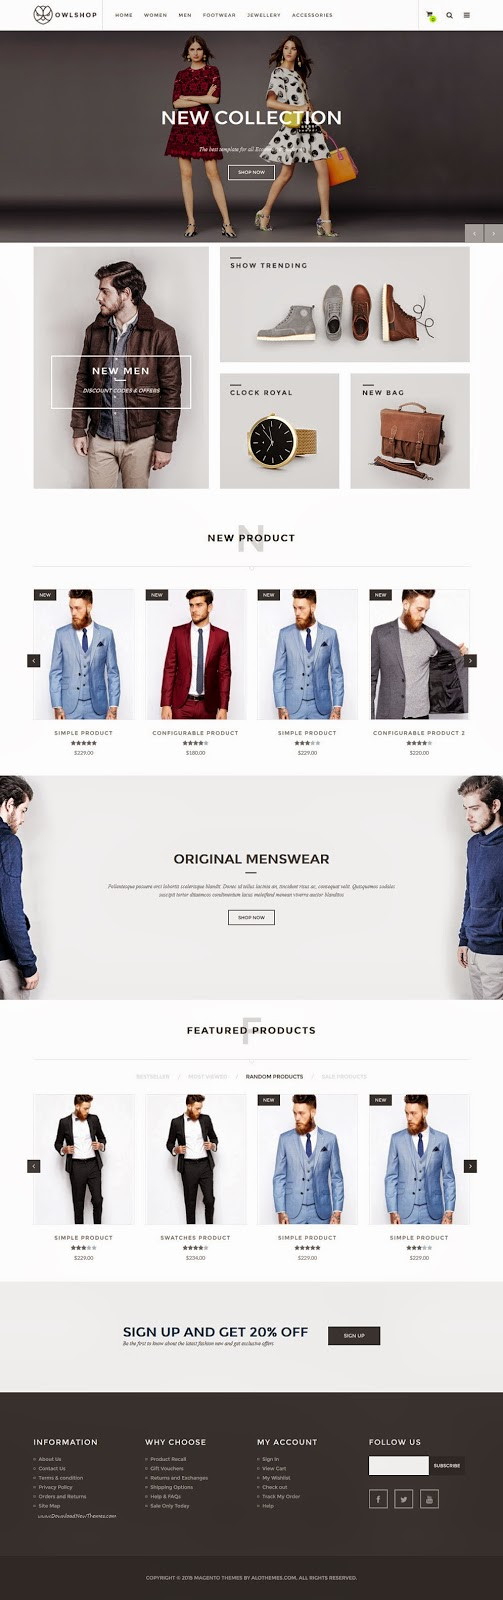 Best eCommerce Templates with Awesome Design